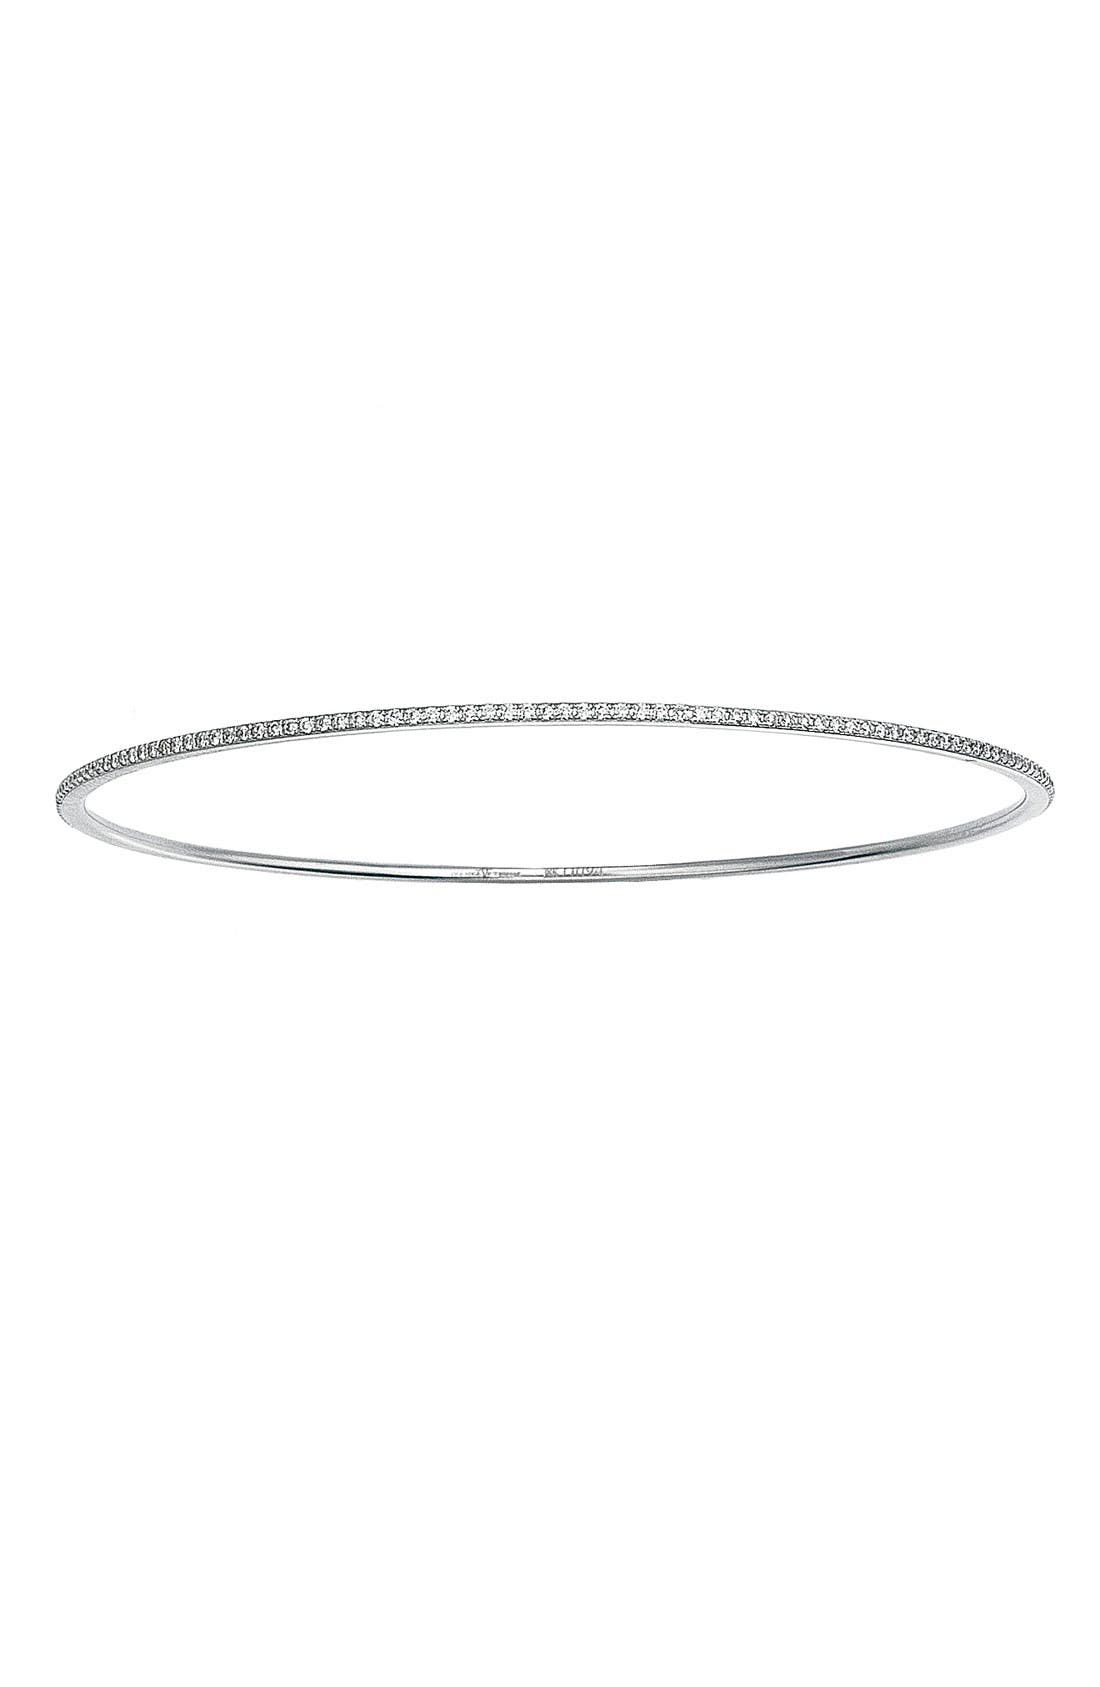 Alternate Image 1 Selected - Ivanka Trump 'Black & White' Thin Diamond Bangle